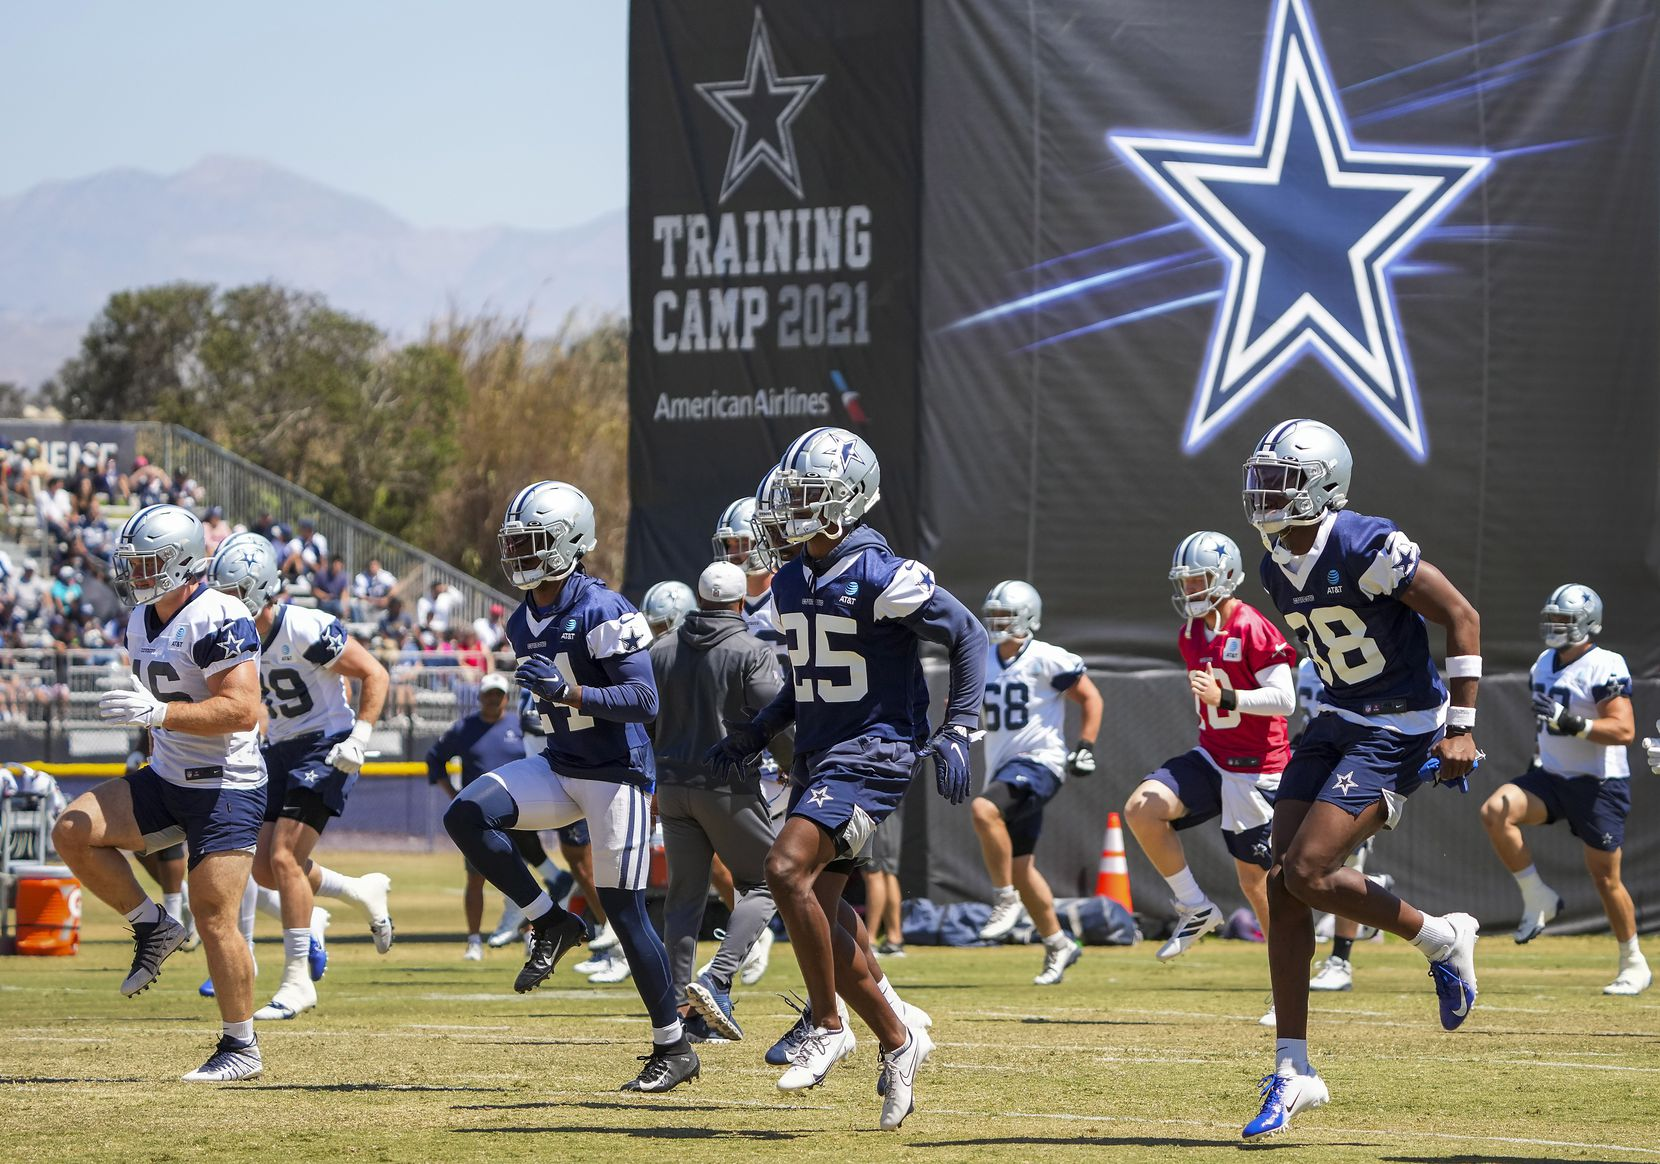 Dallas Cowboys players, including cornerback Israel Mukuamu (38), safety Steven Parker (25) and cornerback Kelvin Joseph (24) stretch during a practice at training camp on Tuesday, Aug. 3, 2021, in Oxnard, Calif.